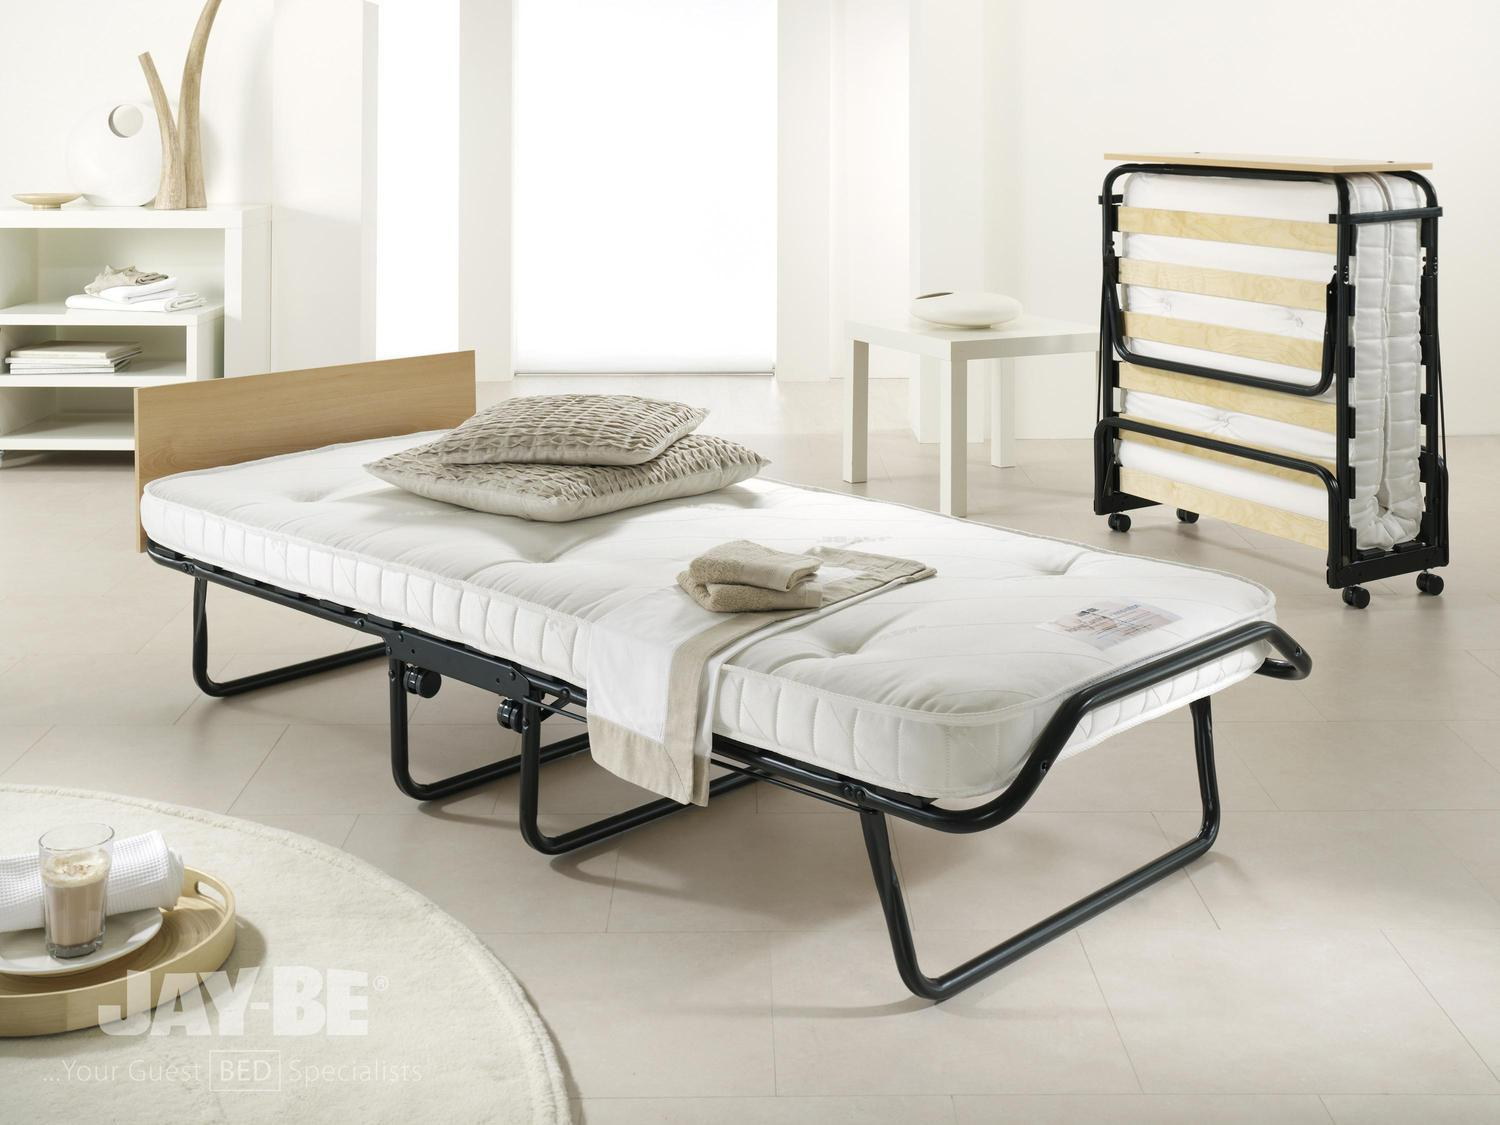 Fold Up Beds Target 10 Best Sleeping Cots Reviewed And Rated In 2019 Thegearhunt